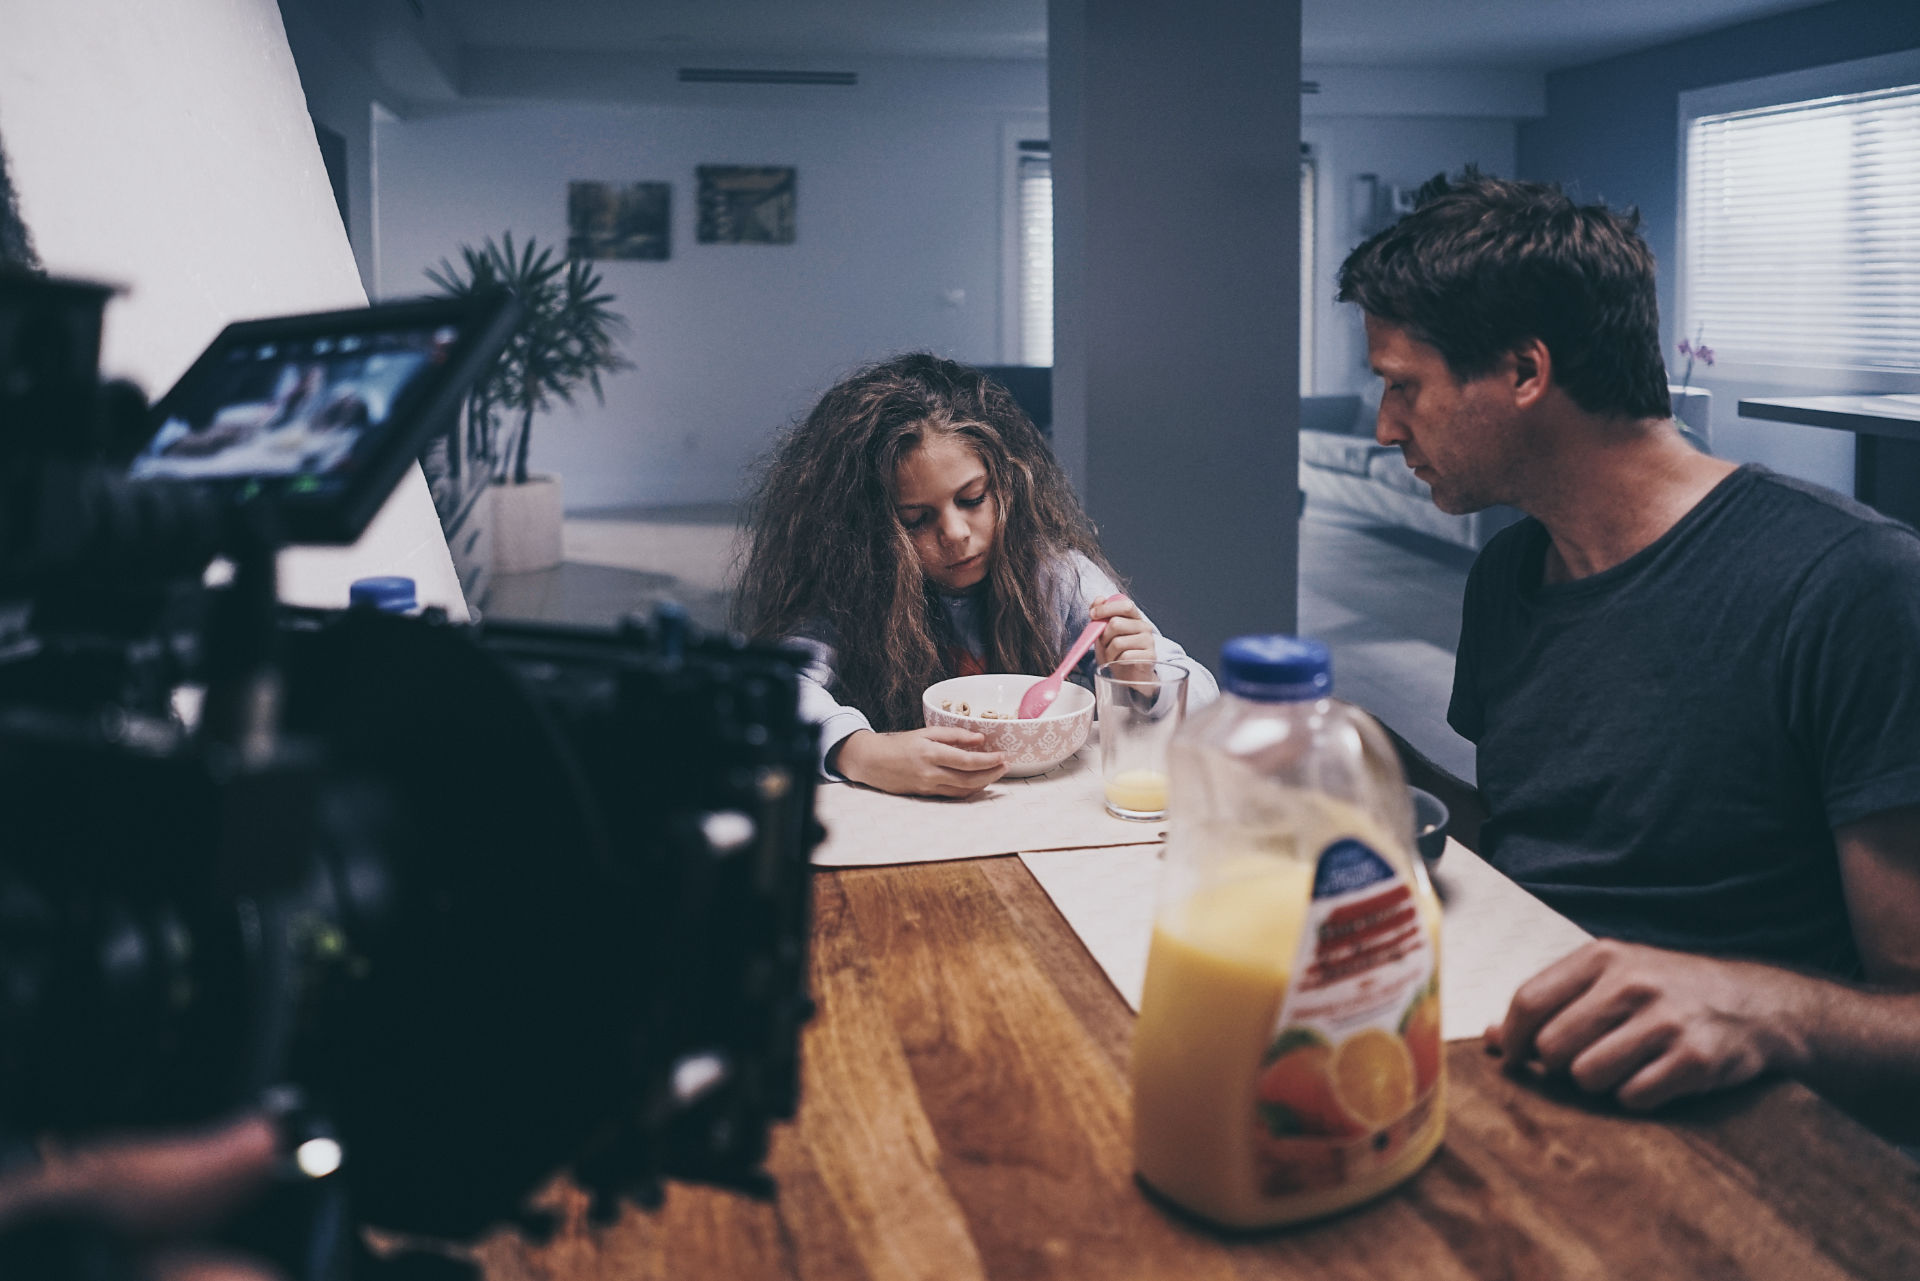 Brady - New Morning Routine - Artex Productions - Best Commercial Video Production Agency in Miami